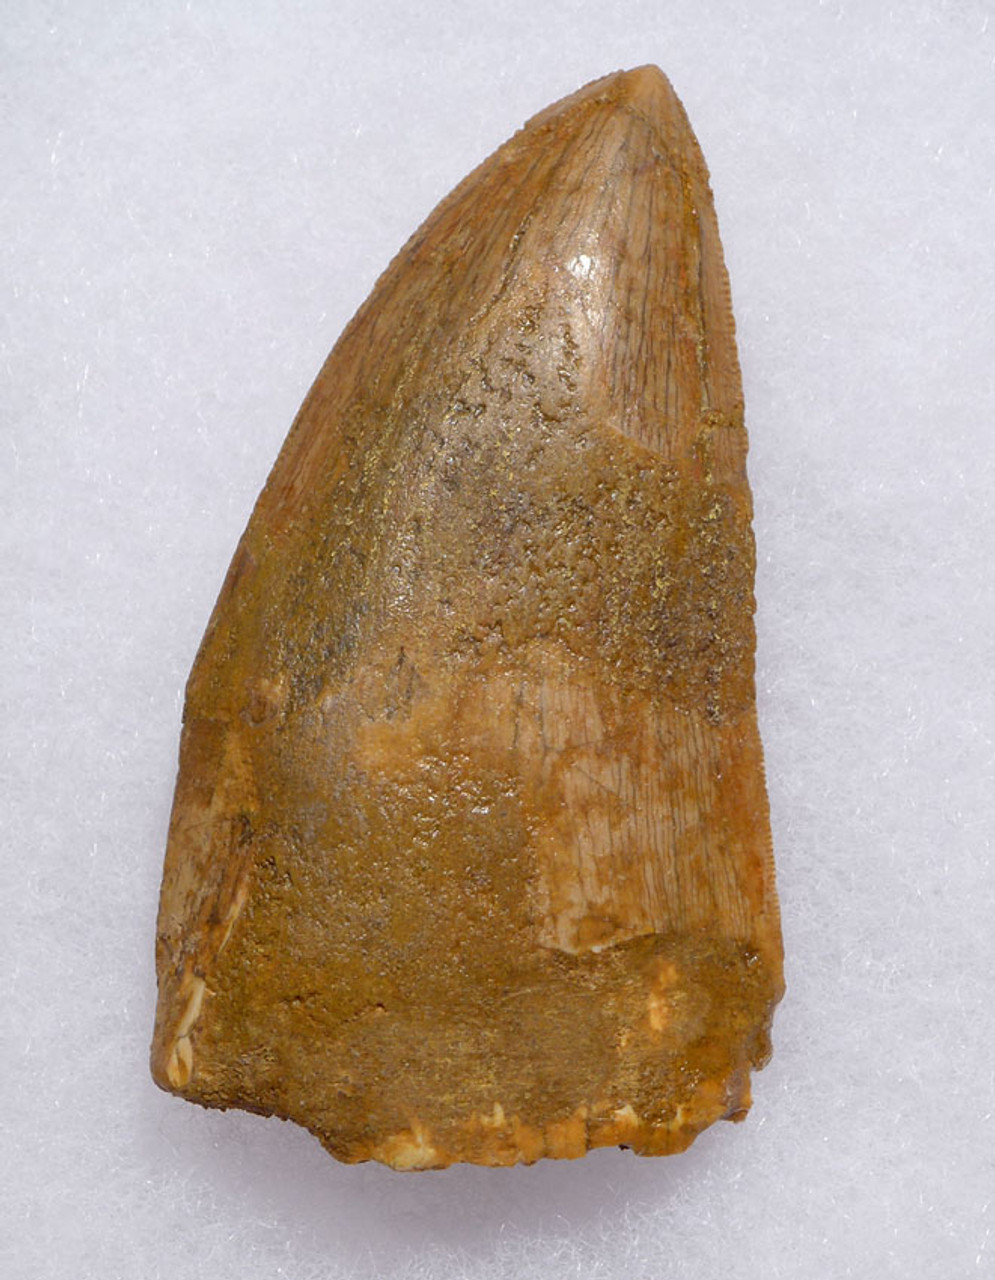 DT2-089 - BROAD 3 INCH FOSSIL DINOSAUR TOOTH FROM A MAXIMUM SIZE CARCHARODONTOSAURUS